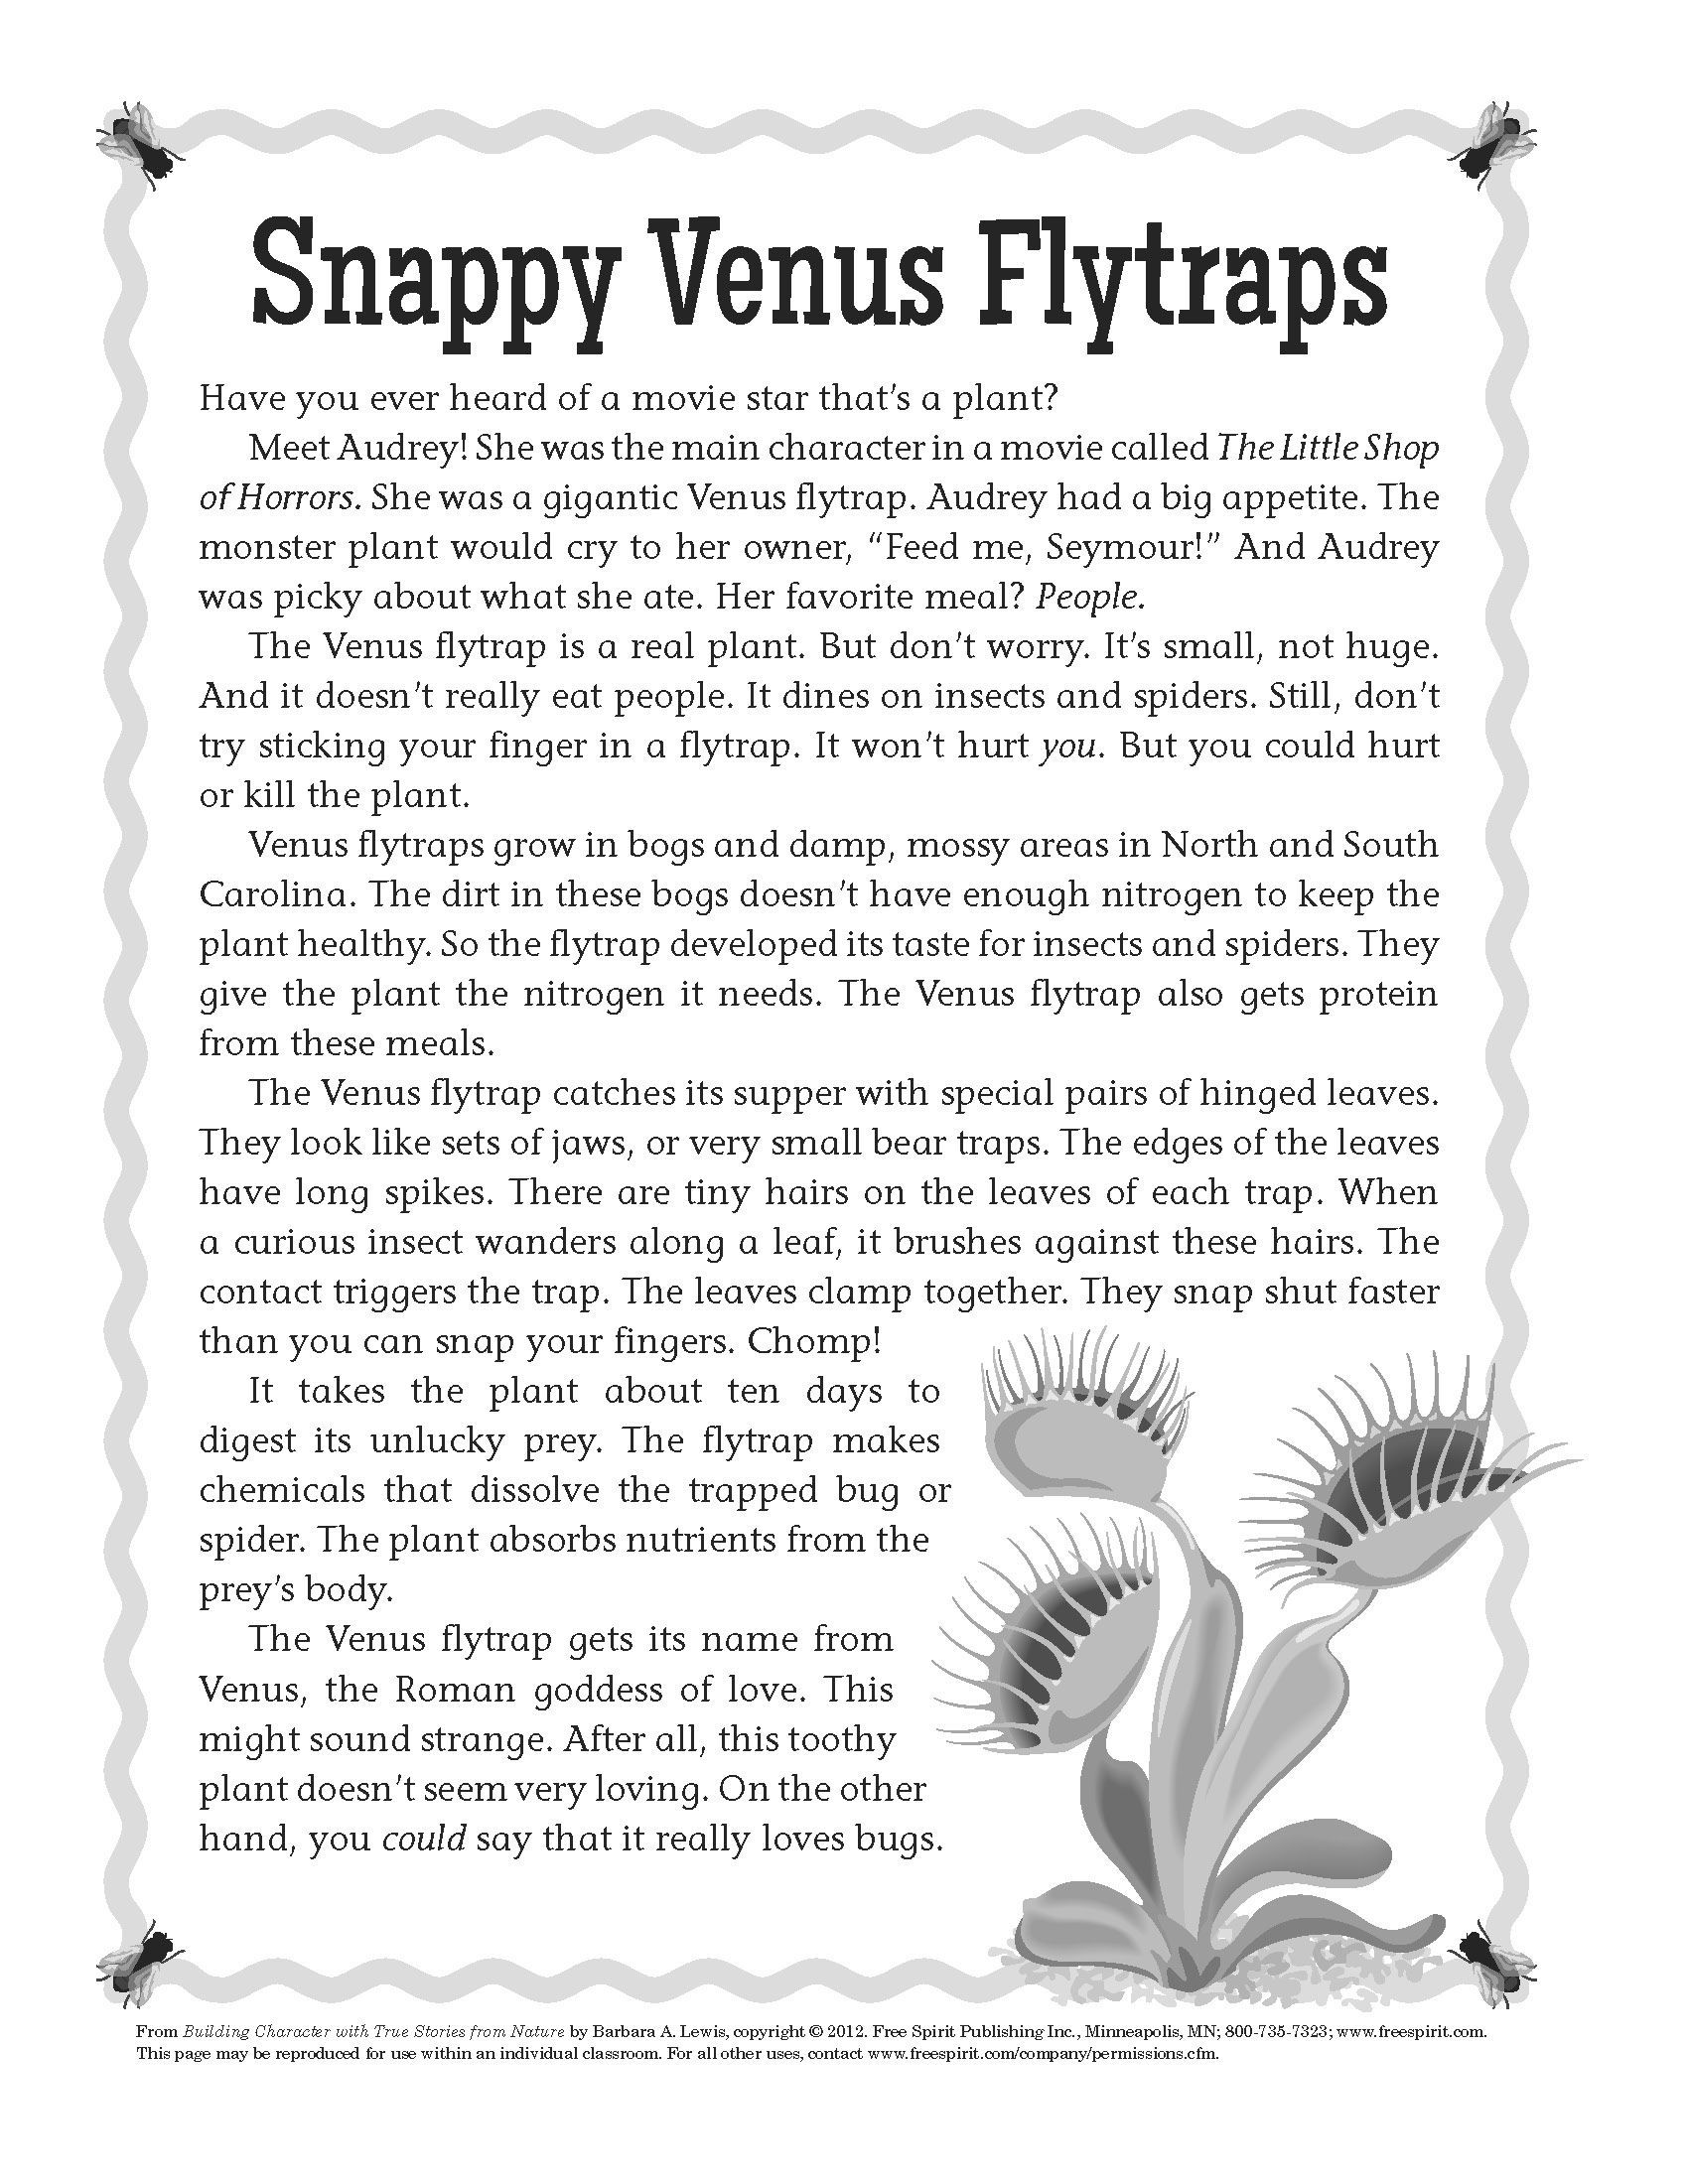 The All About The Venus Flytrap In A Free Download From